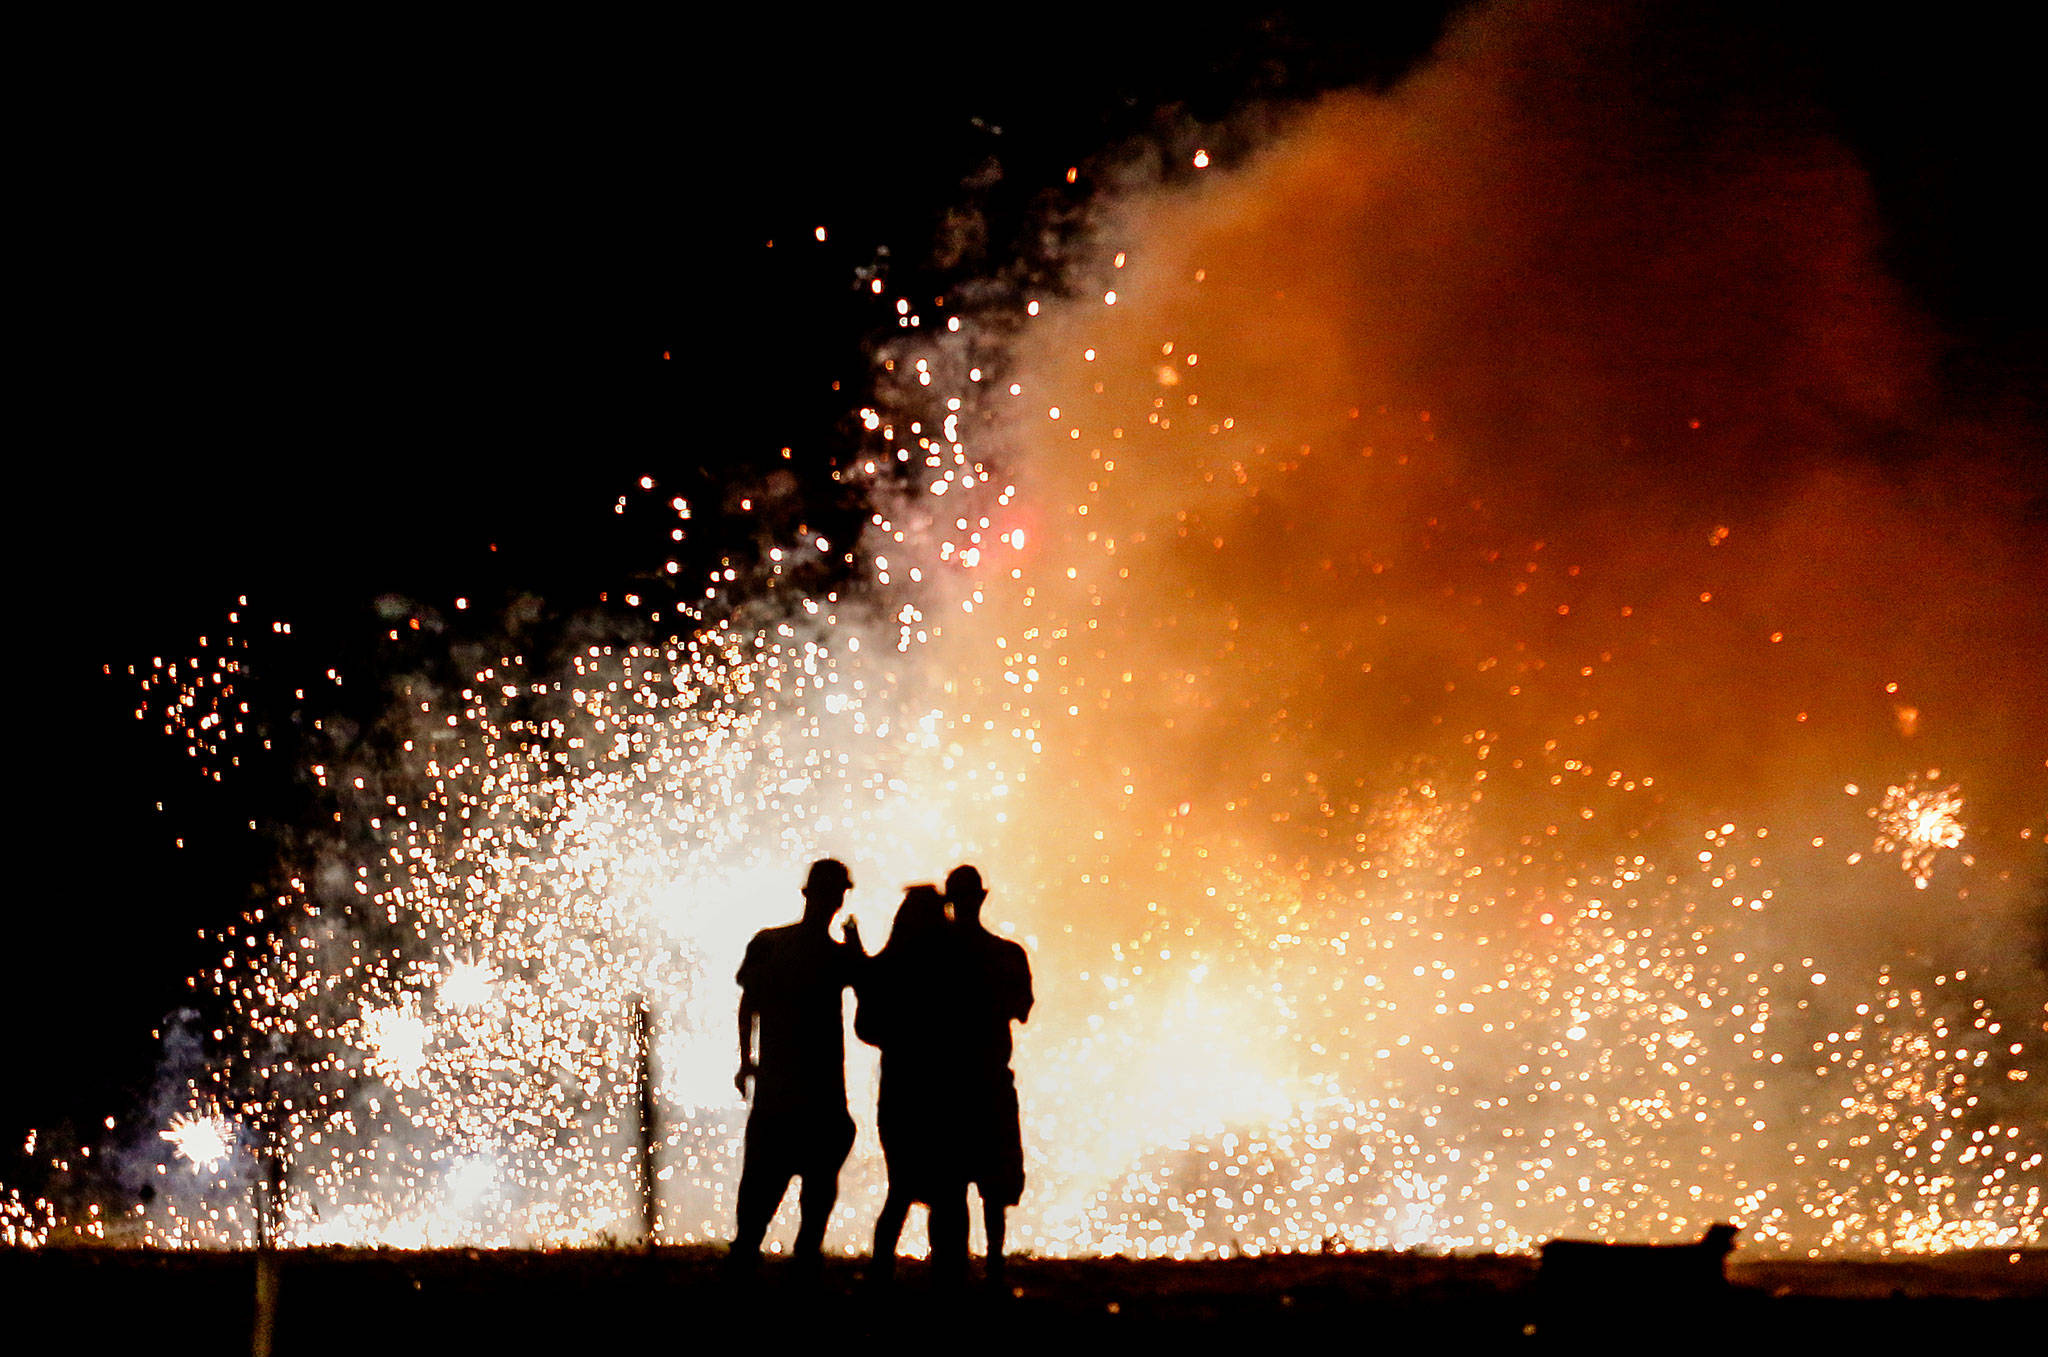 A trio in the lighting area at Boom City watches a shower of white-hot sparks from several fountains set off Tuesday just as darkness falls. (Dan Bates / The Herald)